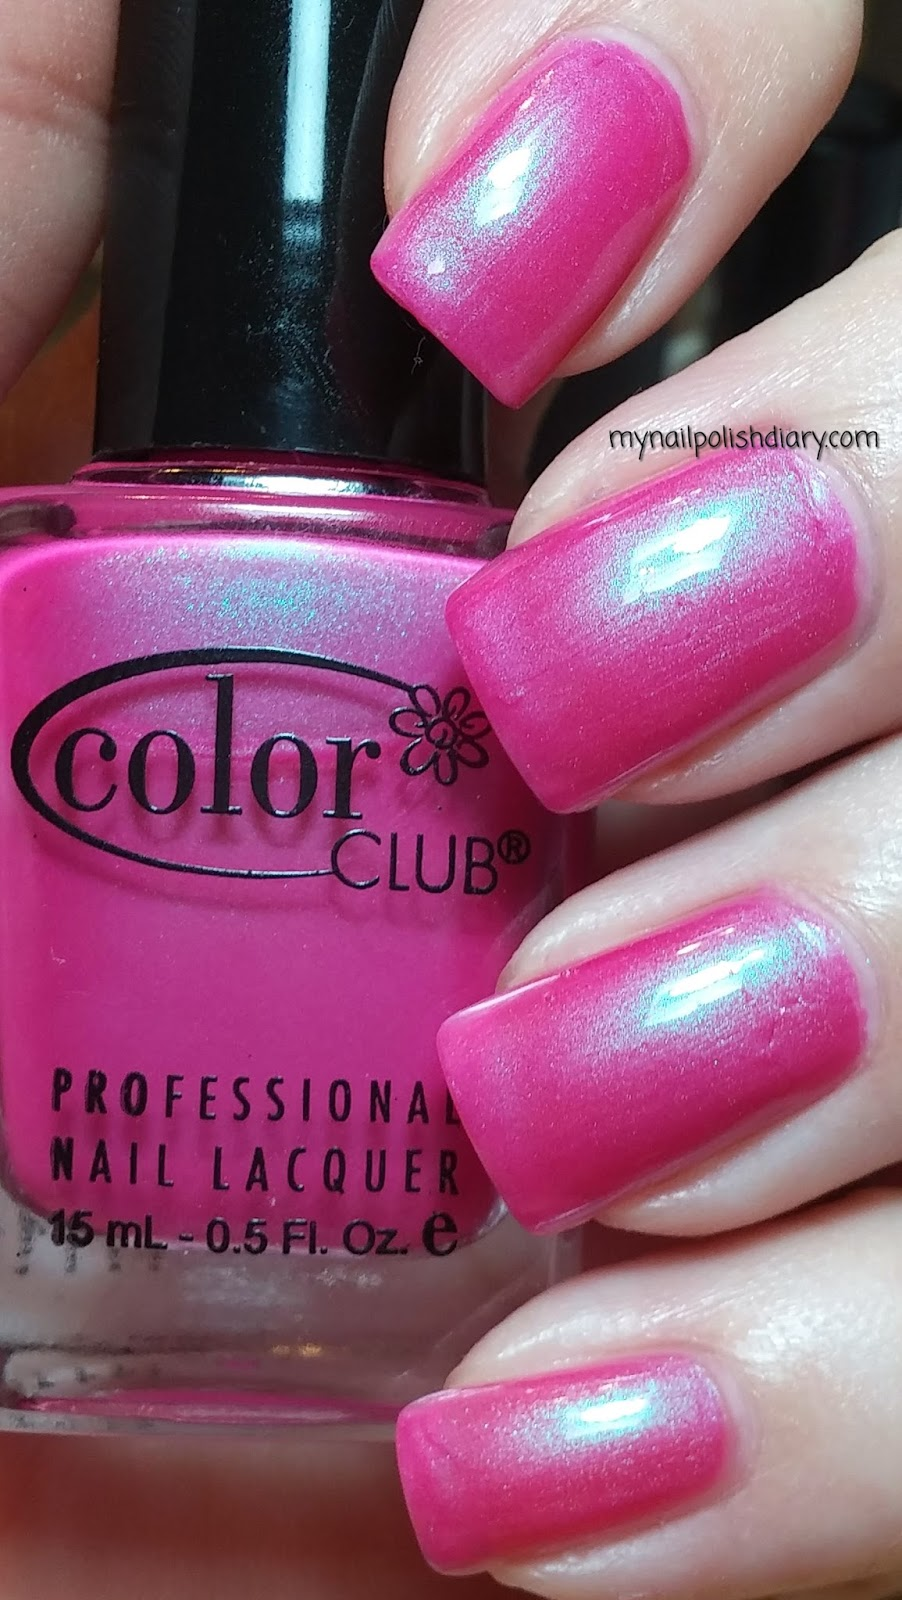 My Nail Polish Diary: Color Club Ultra Violet